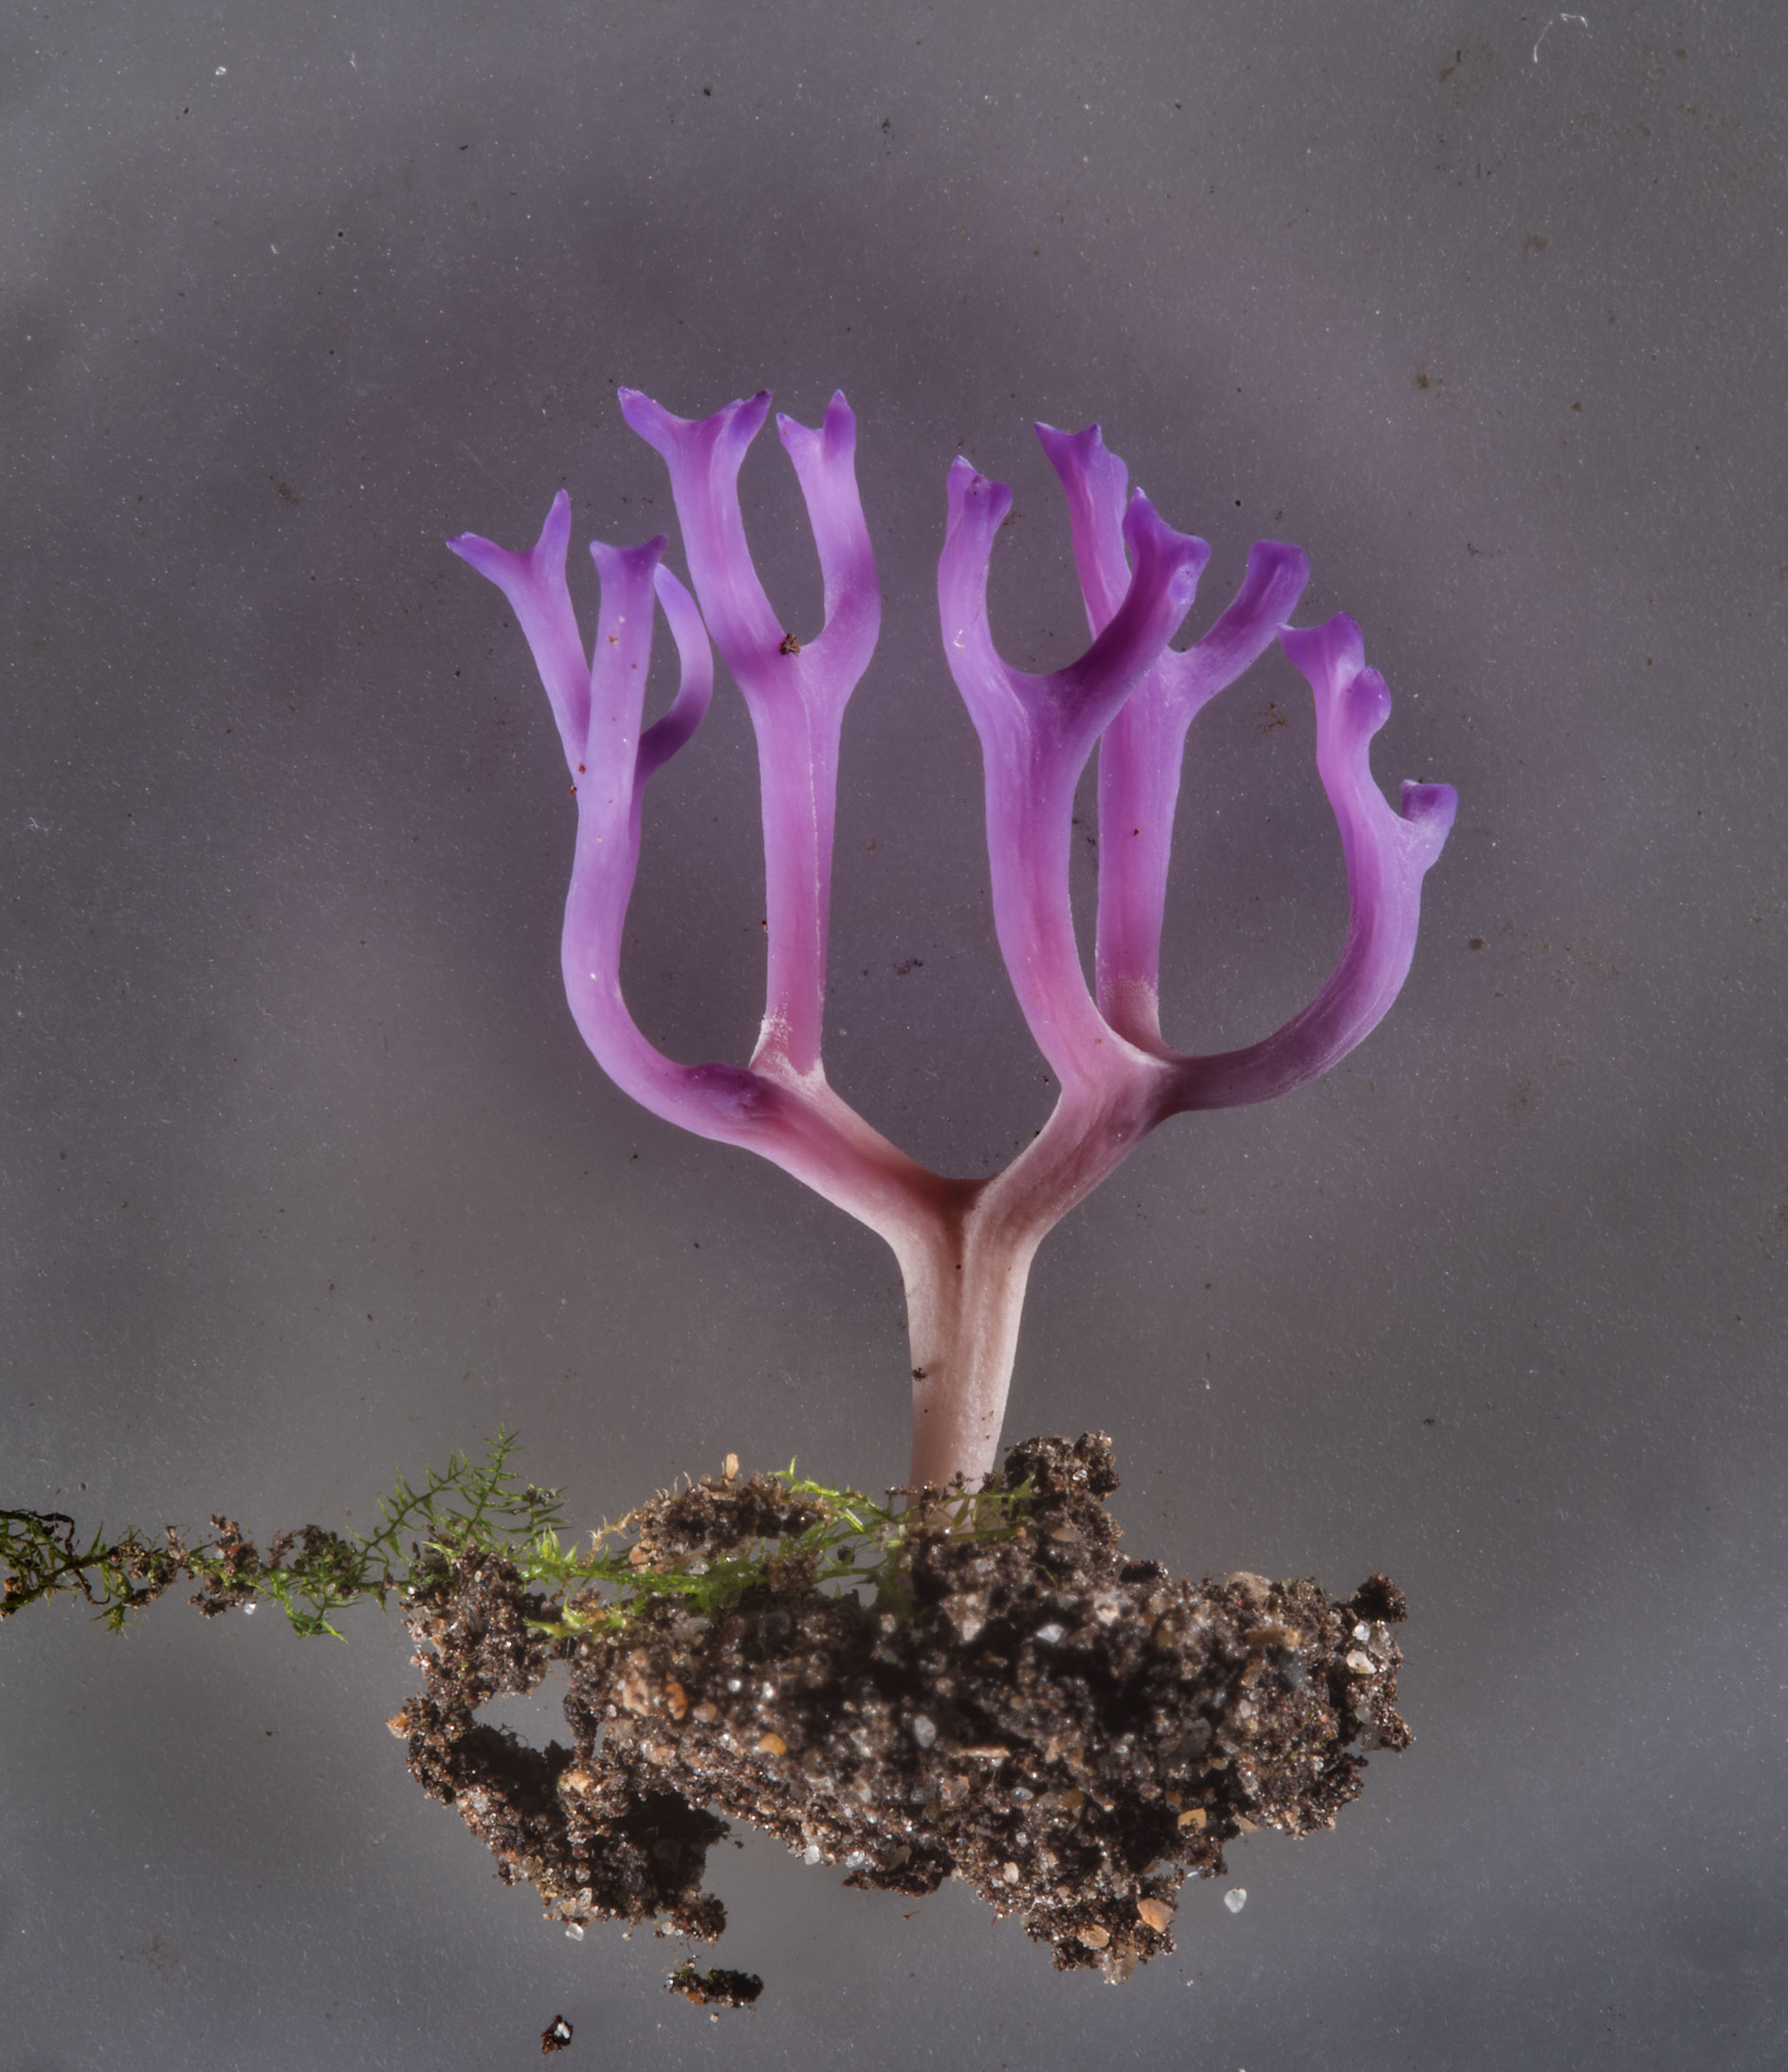 Violet coral mushrooms Ramariopsis pulchella from...Institute. St.Petersburg, Russia